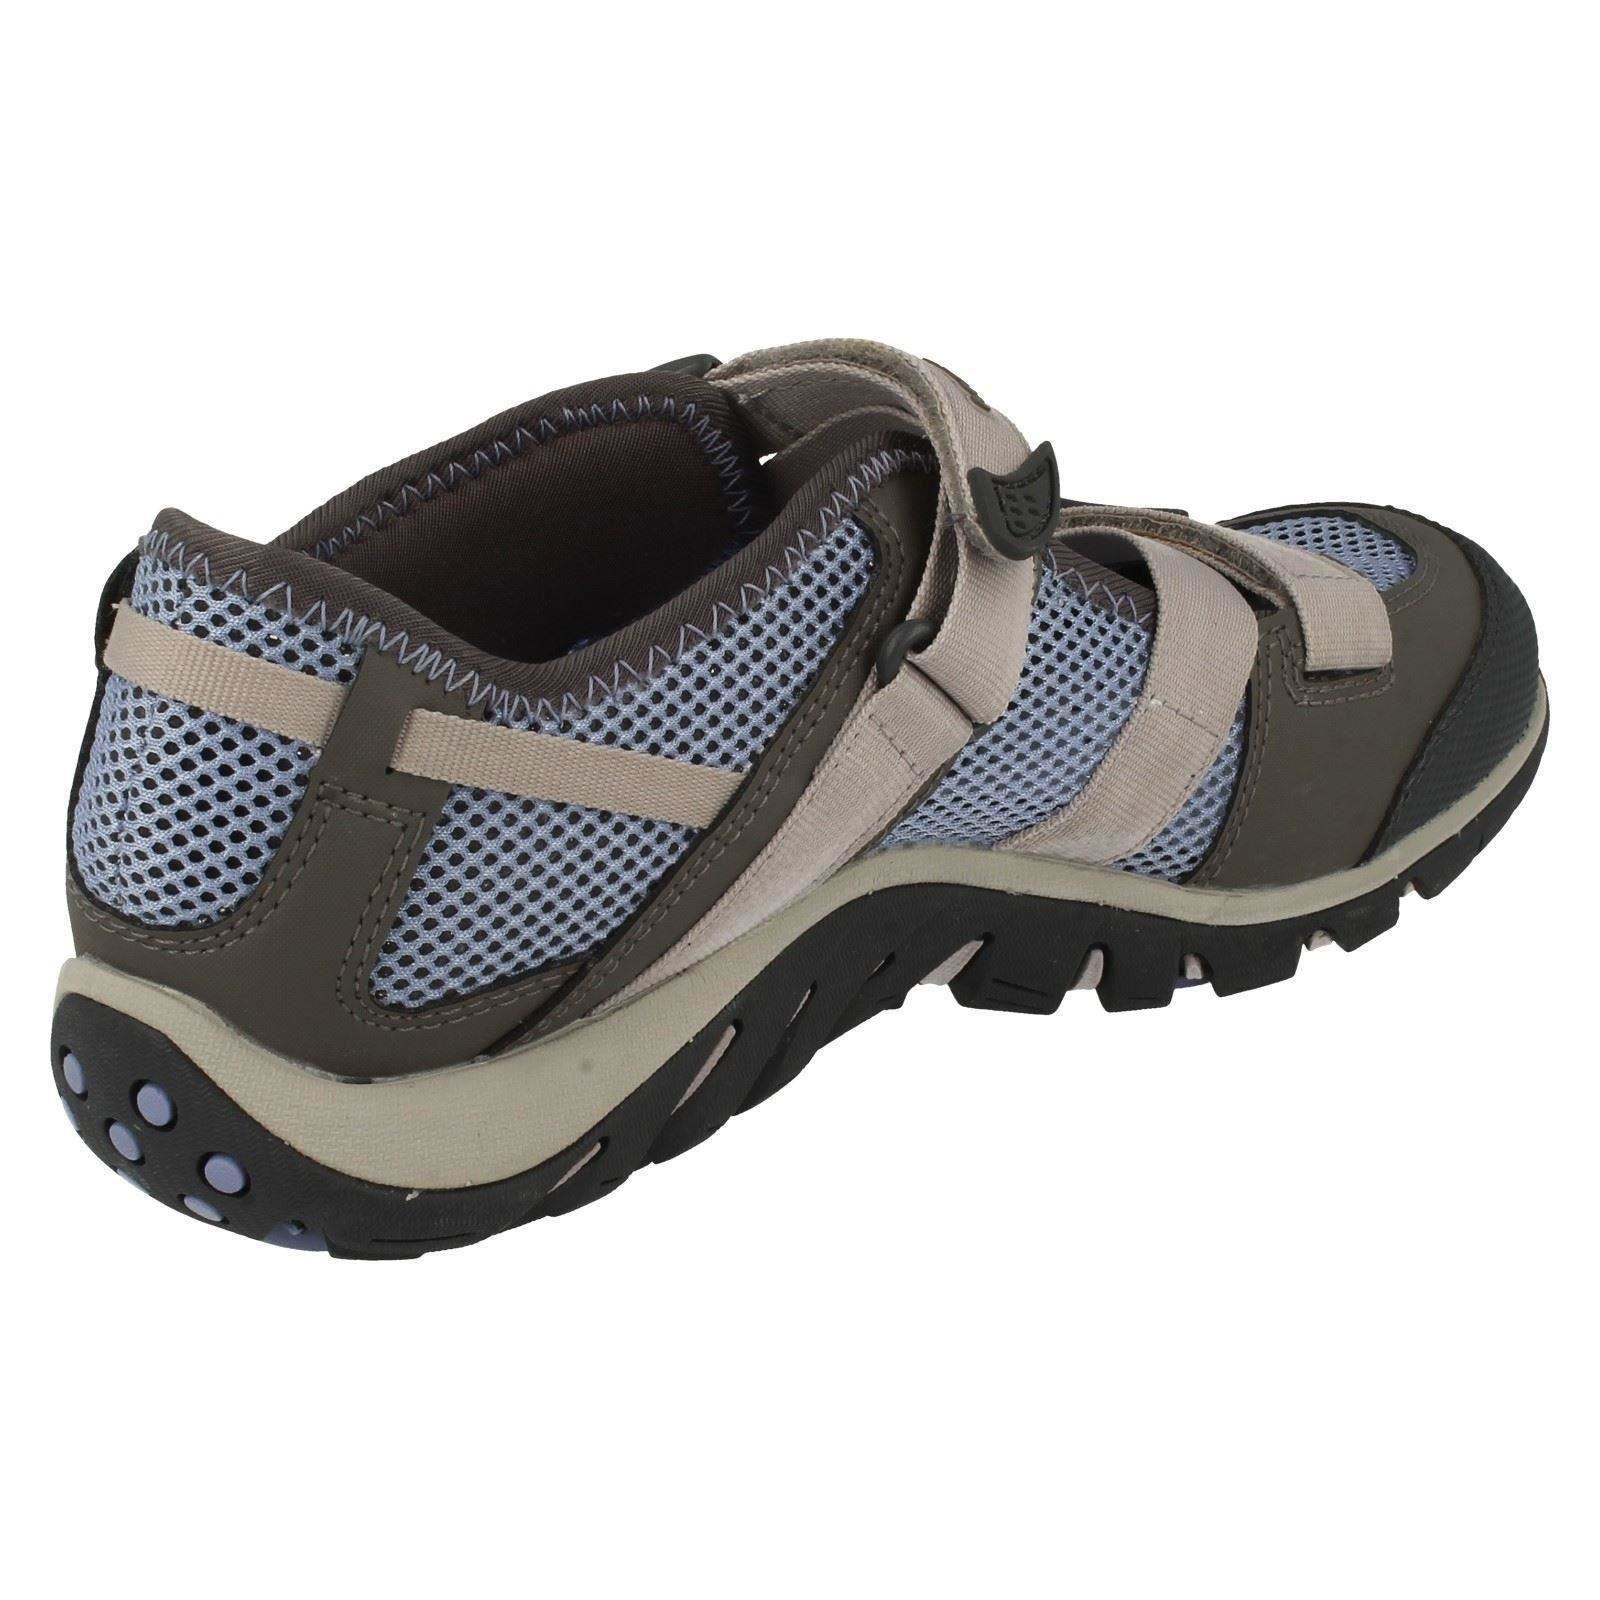 Ladies-Merrell-Buckle-Fastened-Casual-Shoes-Waterpro-Crystal-J82284 thumbnail 6